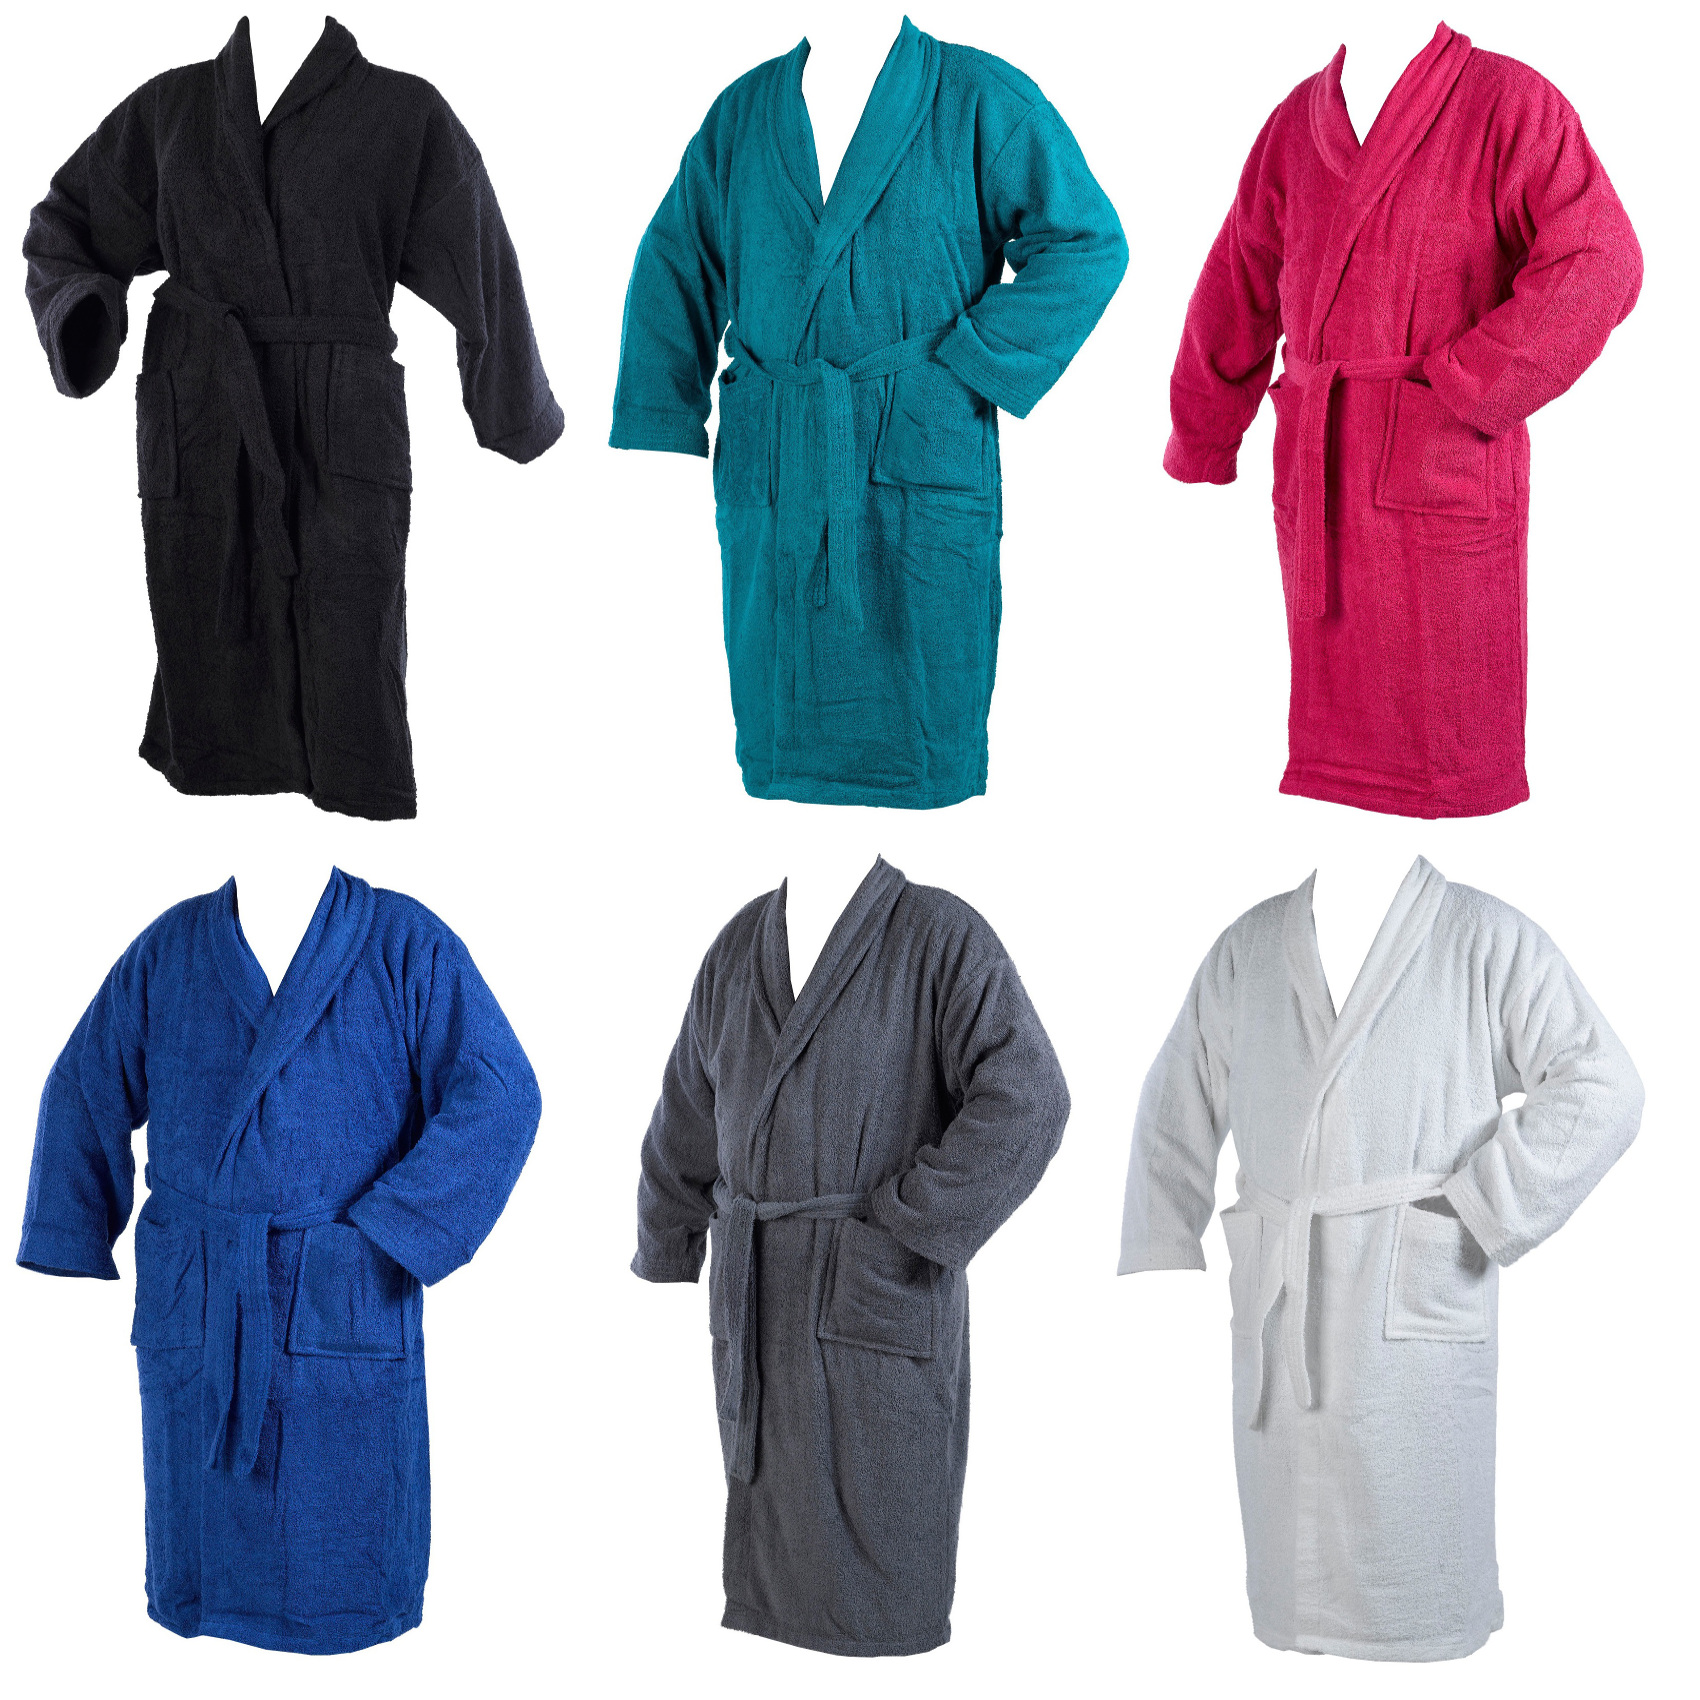 Dressing Gown 100% Cotton Terry Towelling Mens Womens Wrap Style Bathrobe  XL. Smiley face c4d300355